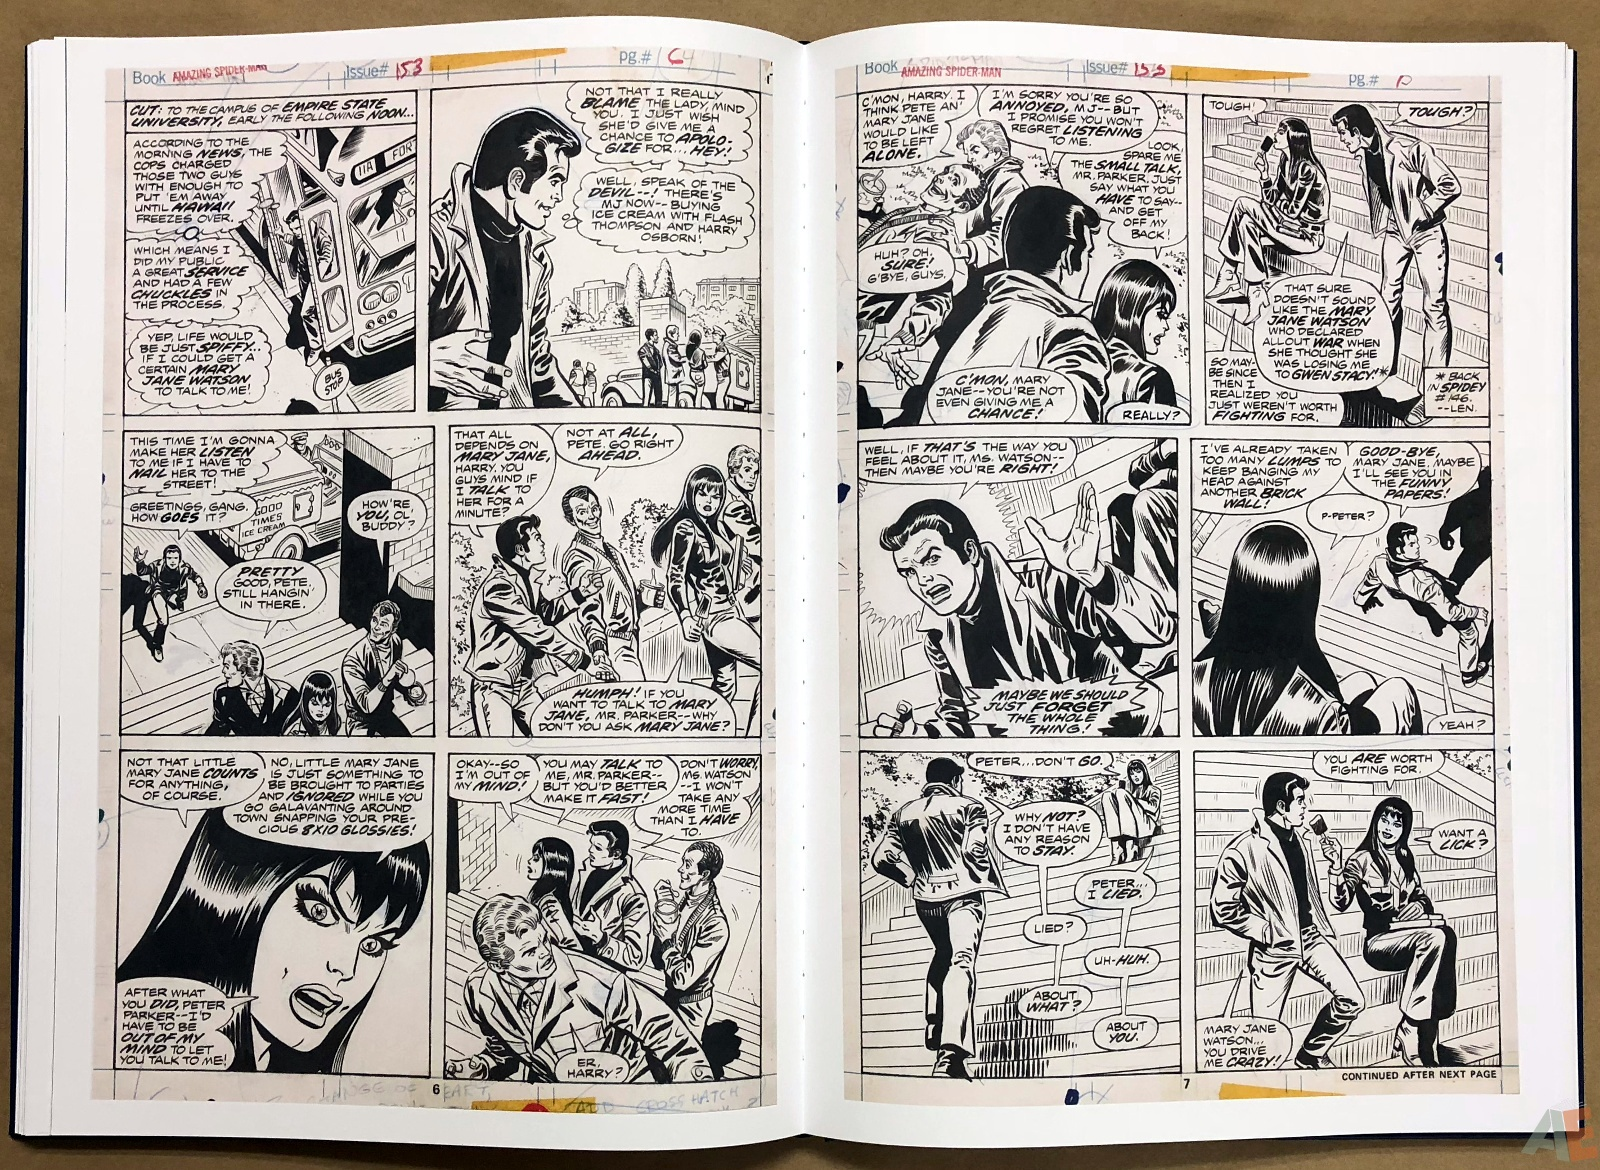 Ross Andru's The Amazing Spider-Man Artist's Edition 26